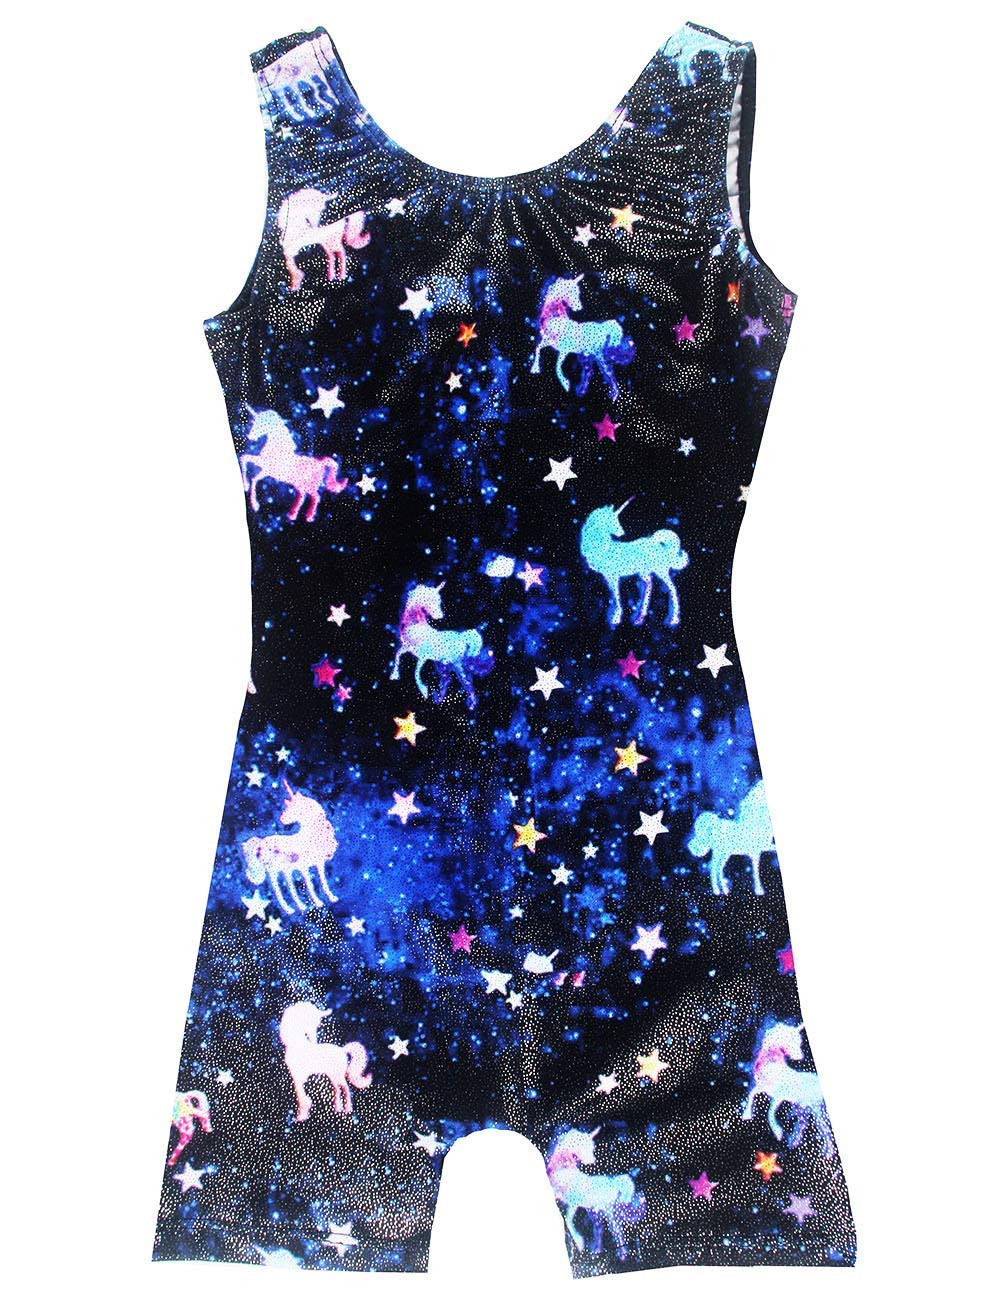 Character Leotards for Girls Gymnastics 7t 8t Sparkly Kids Fancy Gym Biketard With Shorts Unicorn Galaxy Teen Leotards Outfit for Child Dance Activewear Tumblewear Quick Dry by Midout